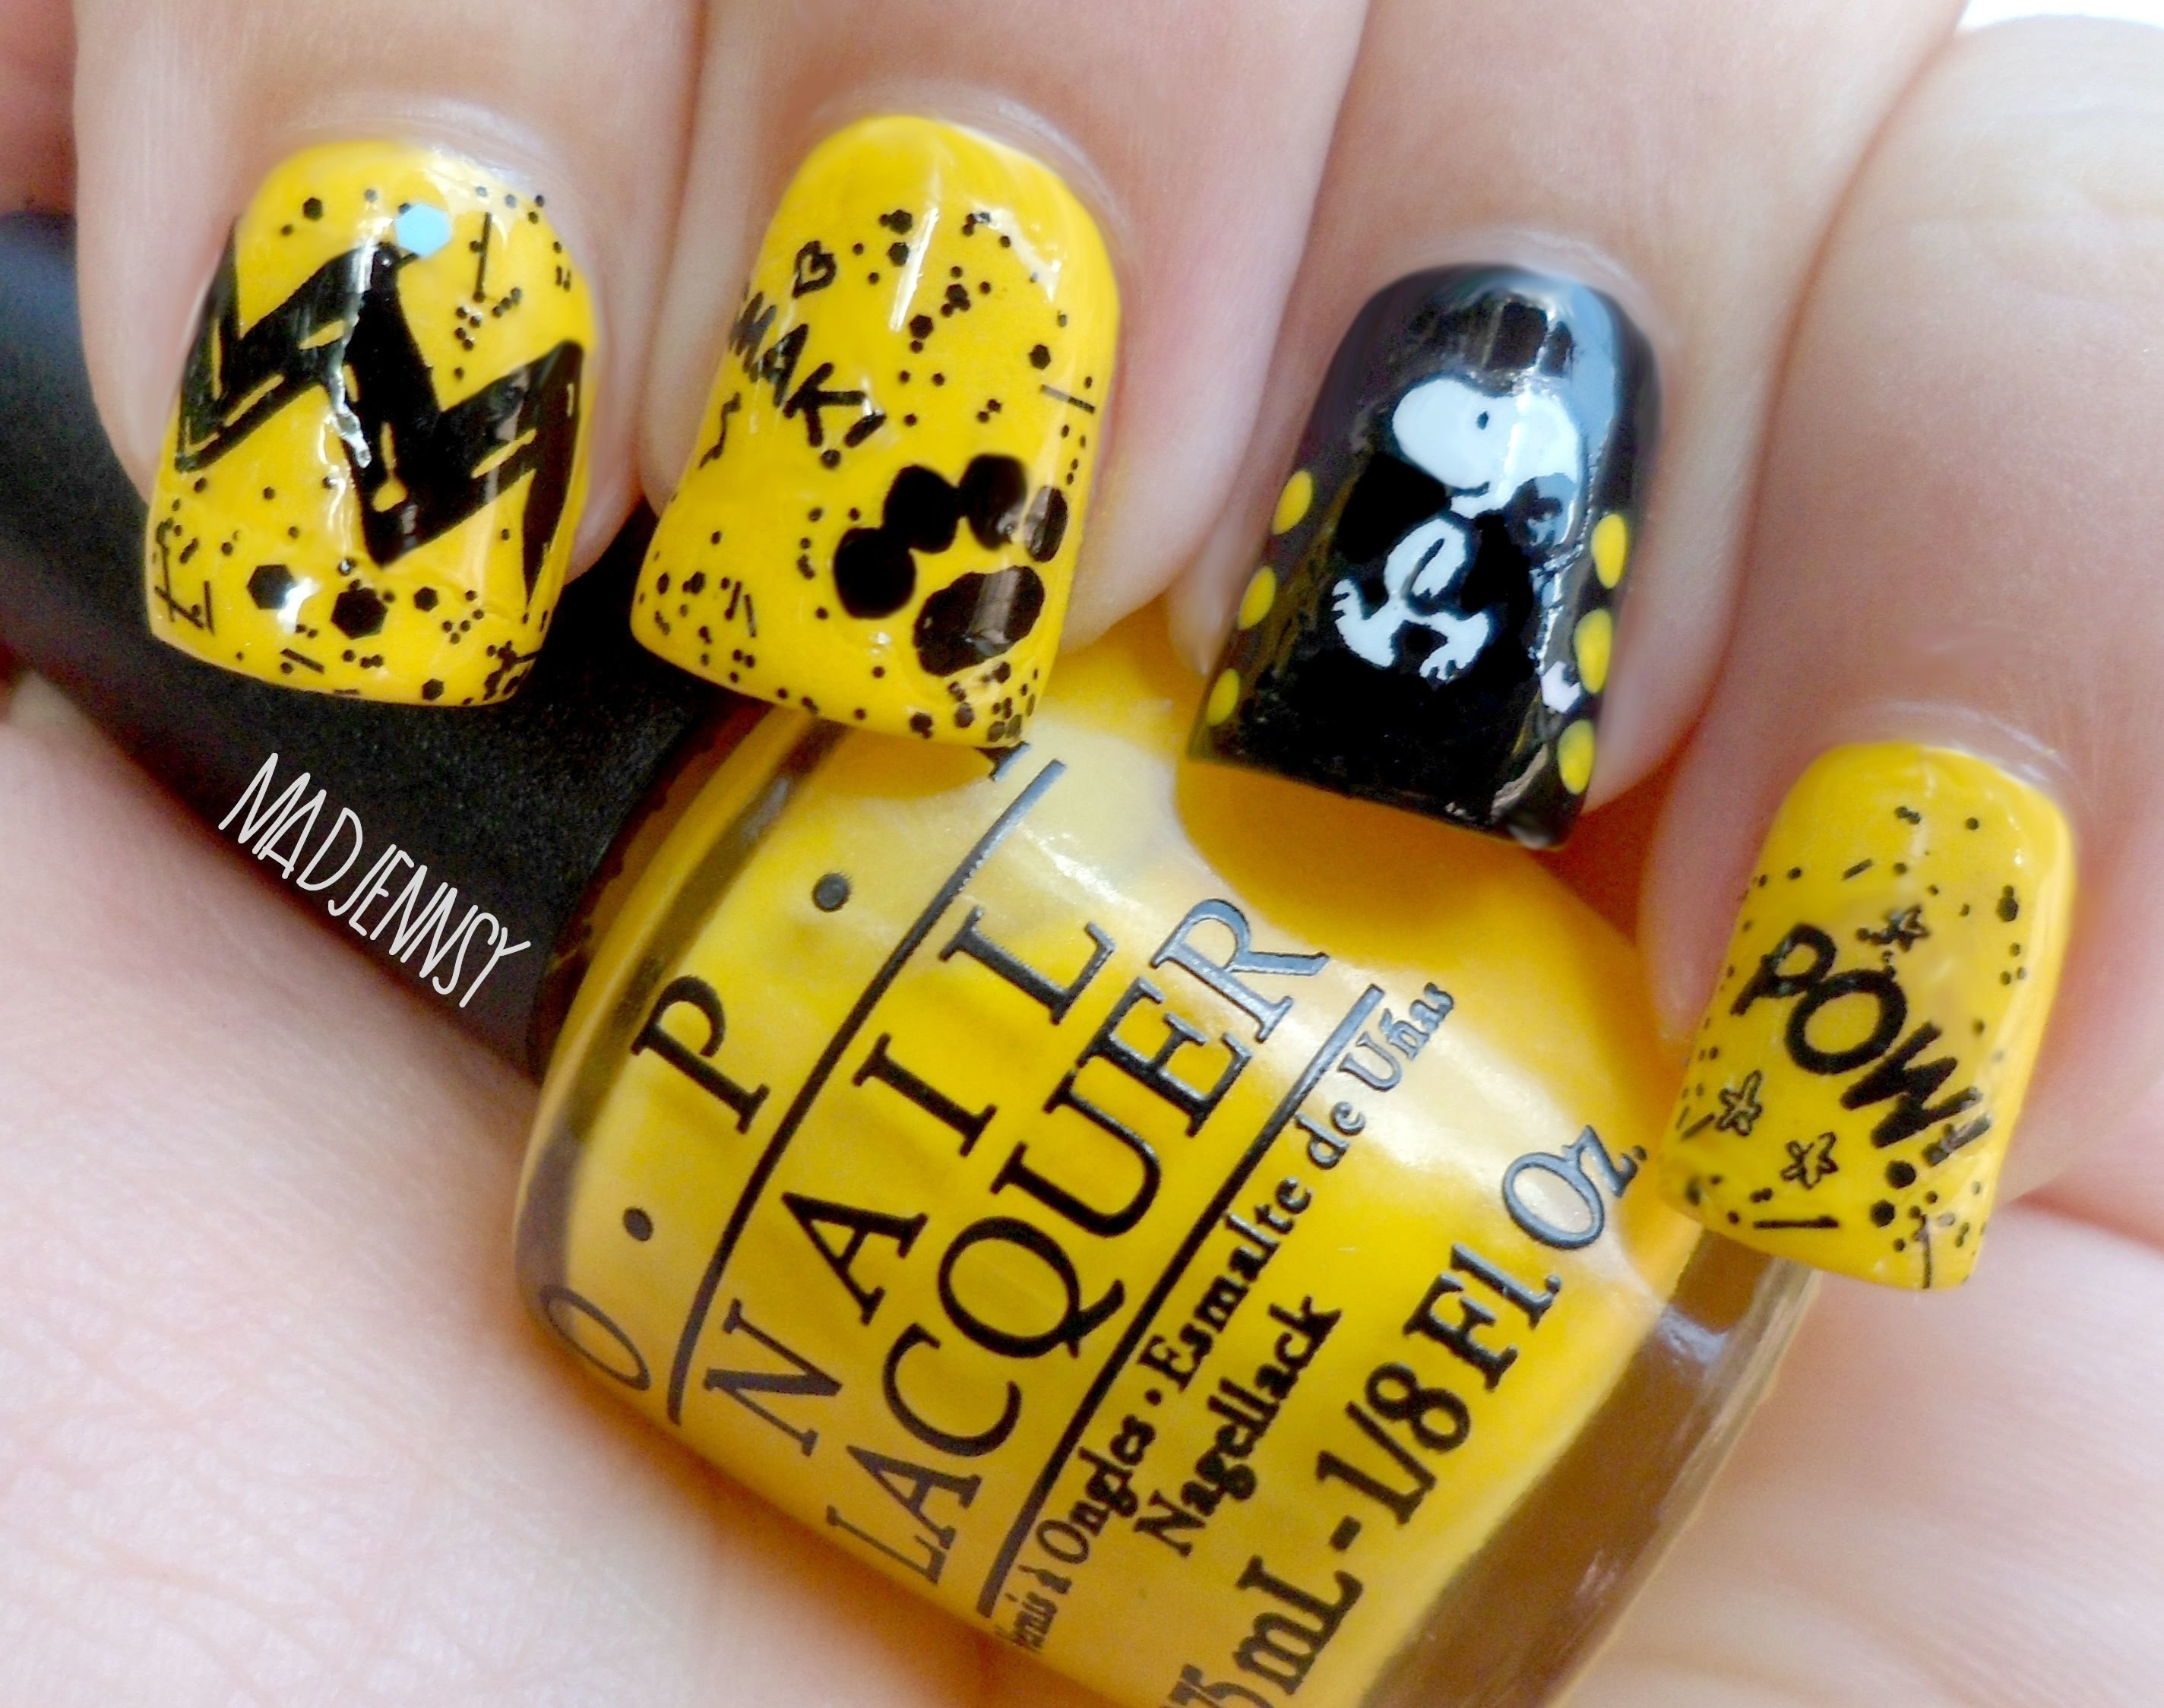 Snoopy Nail Art Peanuts Collection By Opi Review 183 How To Paint An Embellished Nail Manicure